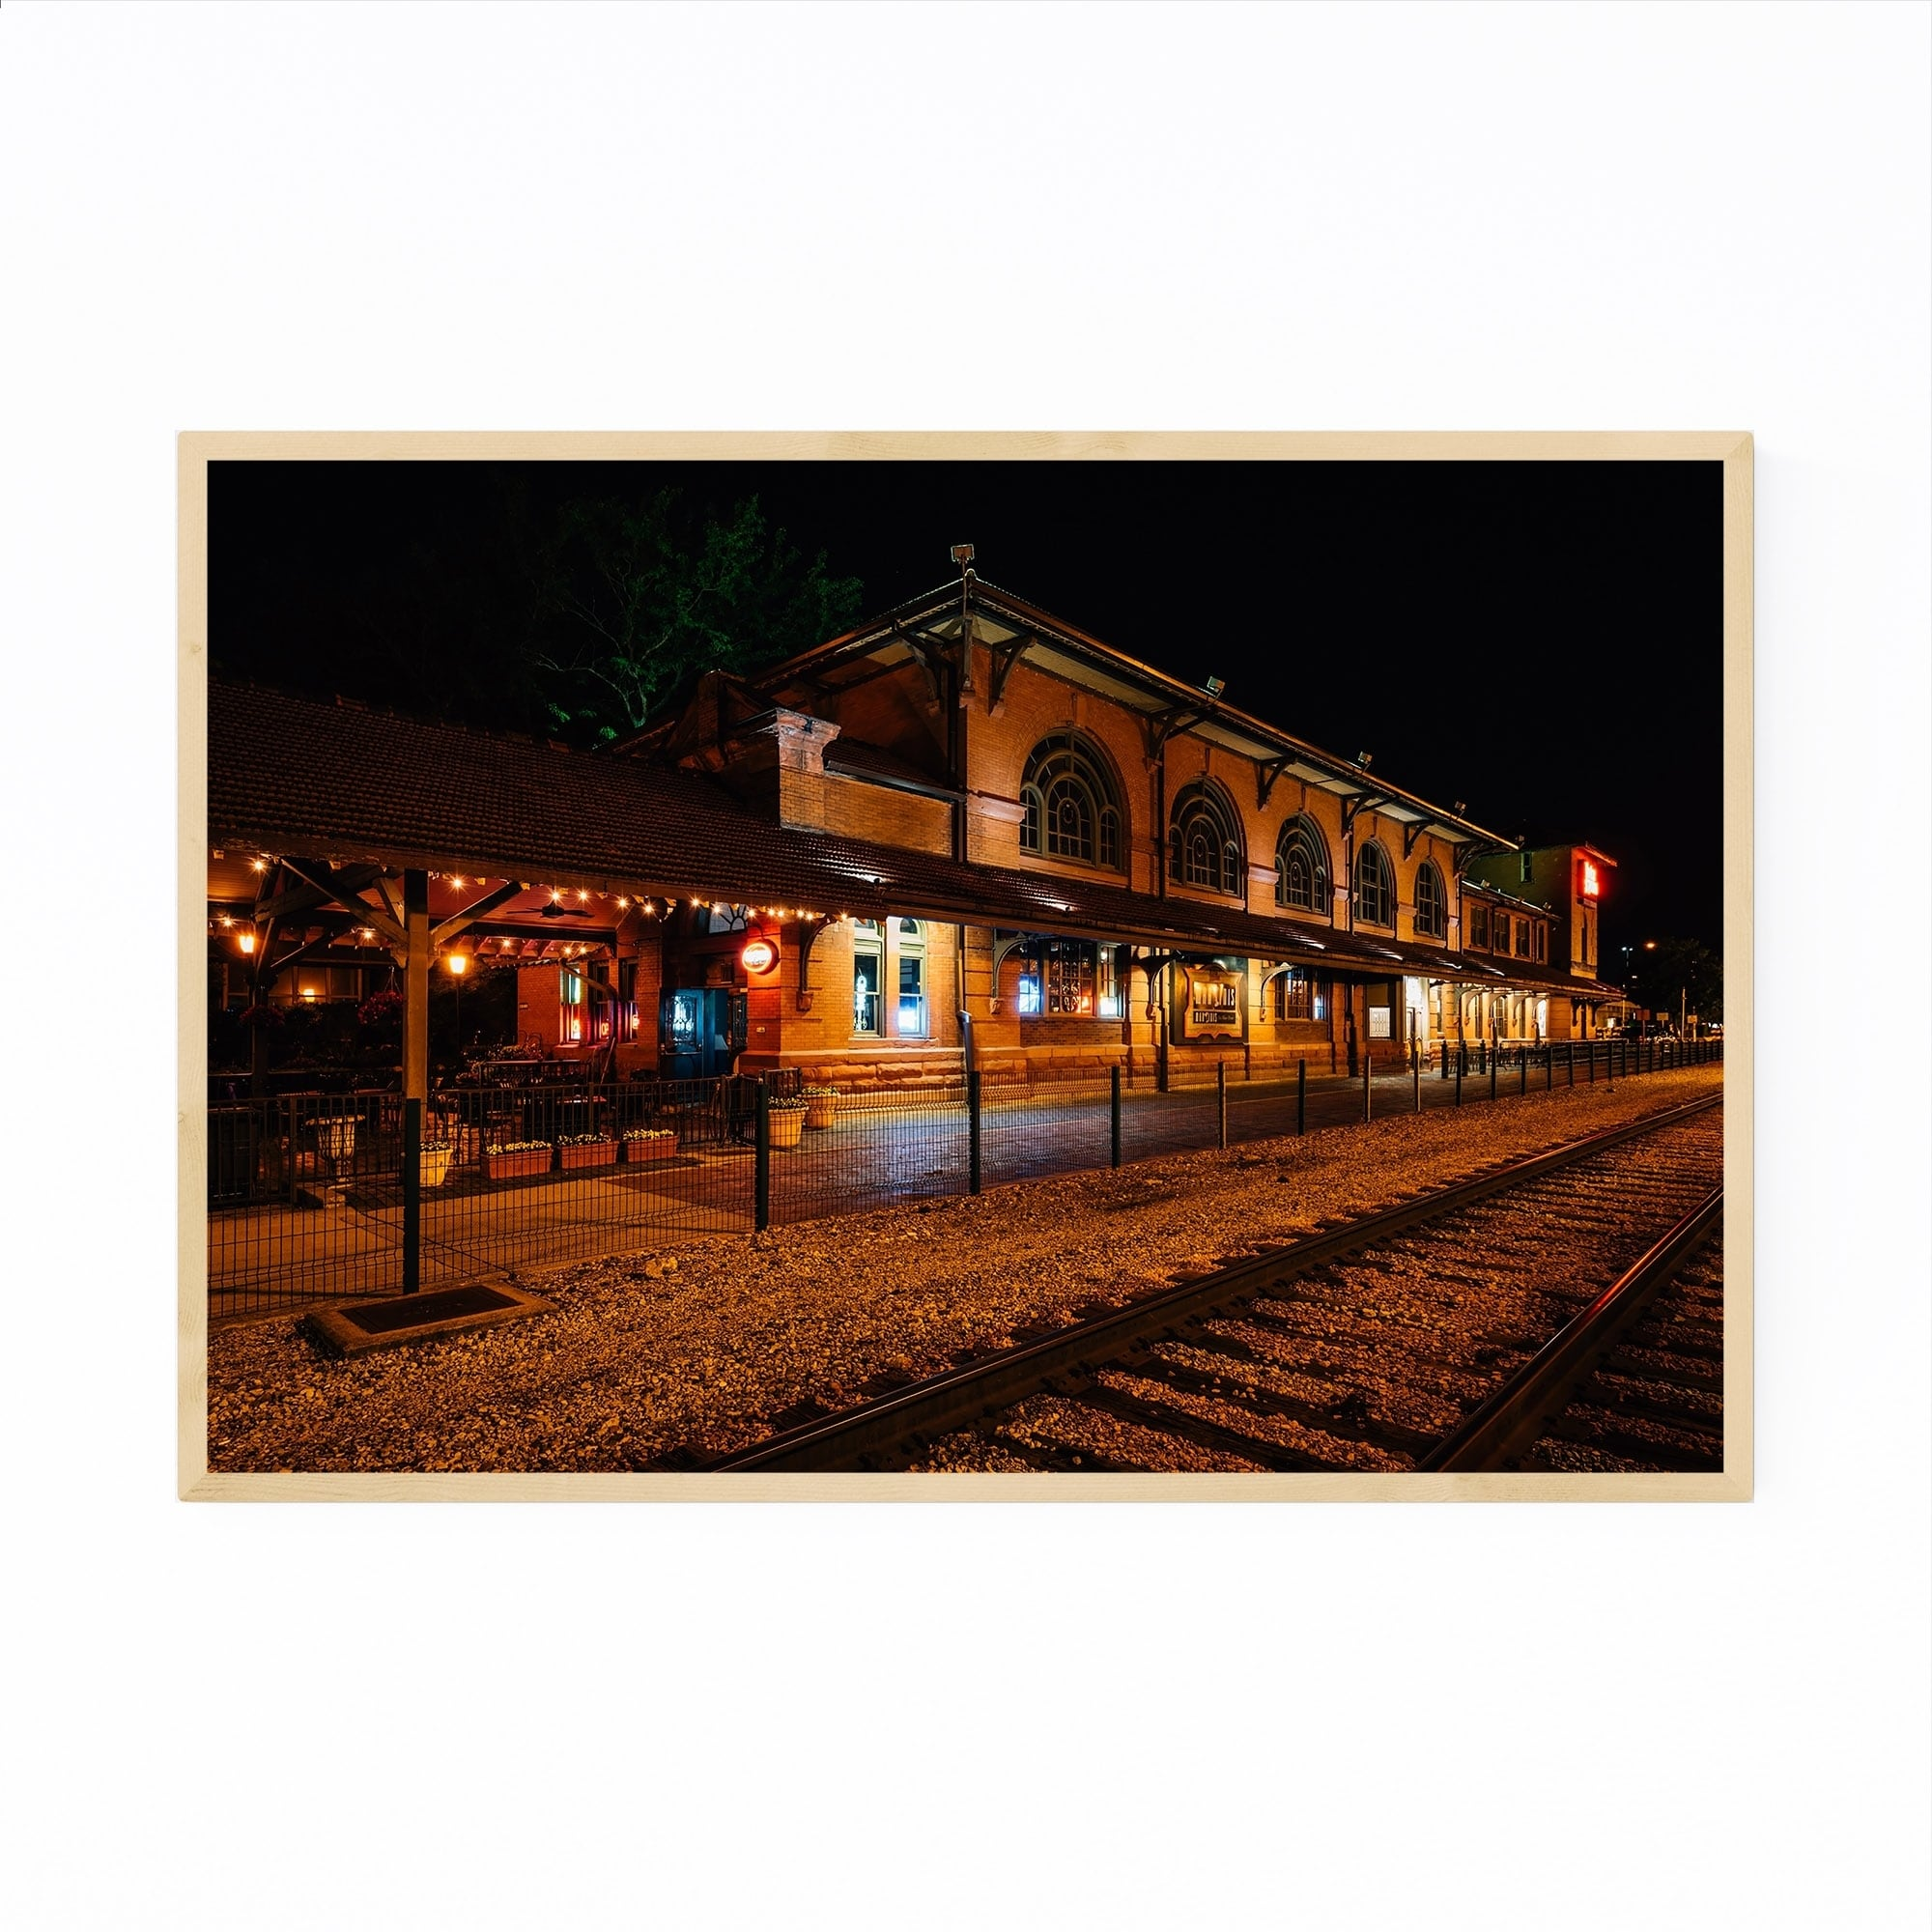 Shop Noir Gallery Peoria Illinois Train Station Framed Art Print